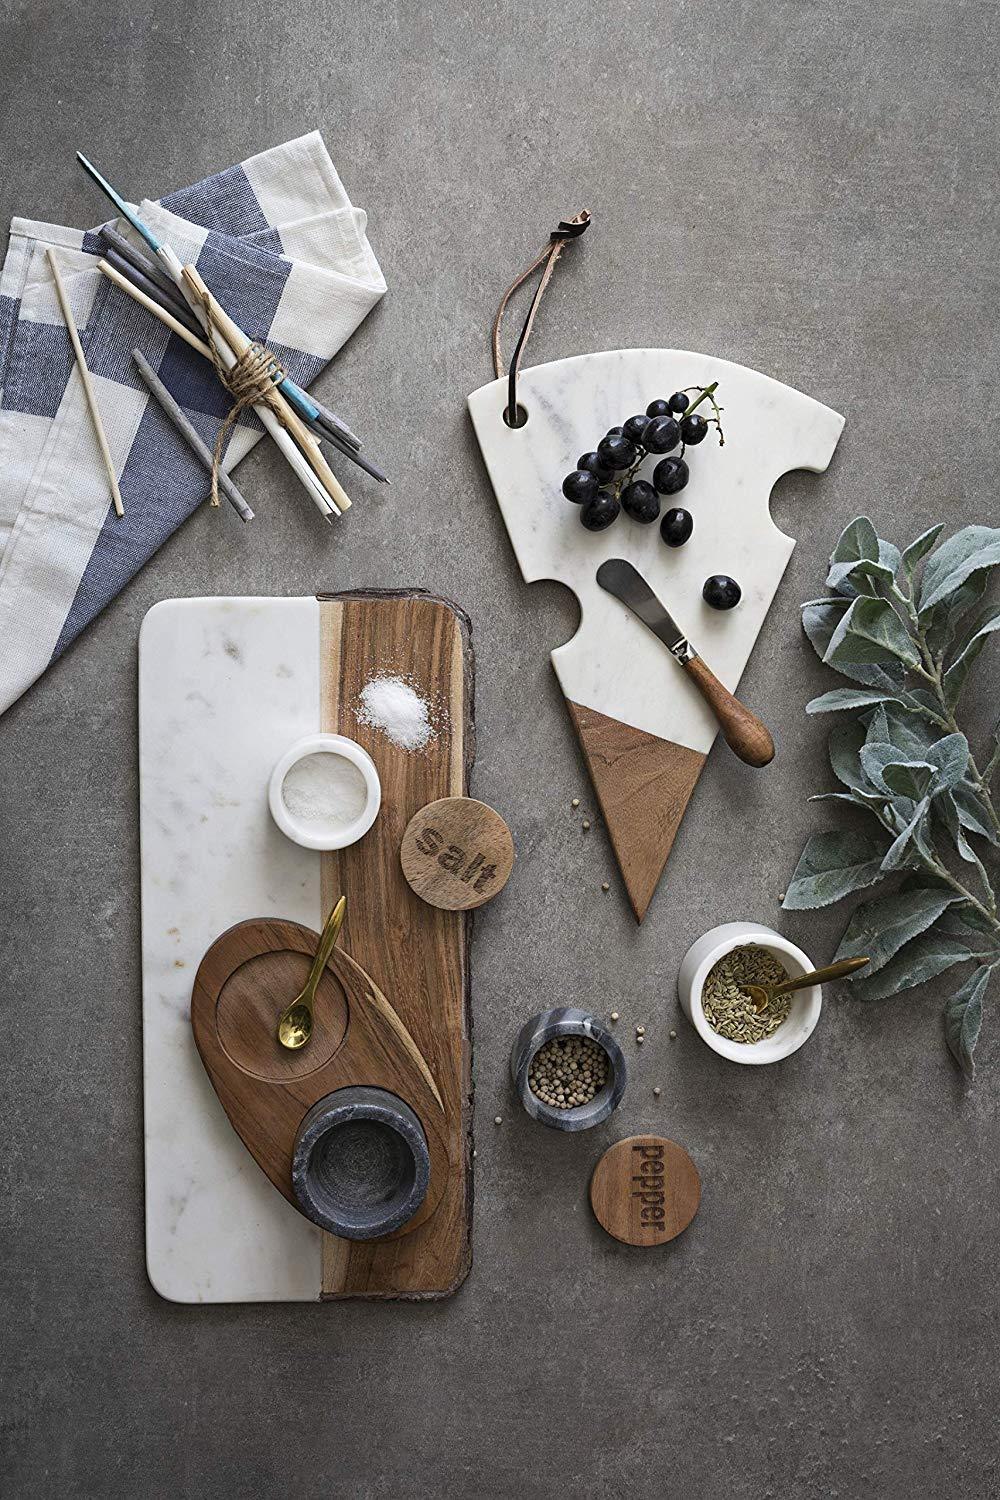 Creative Co-op White Marble + Mango Wood Live Edge Board